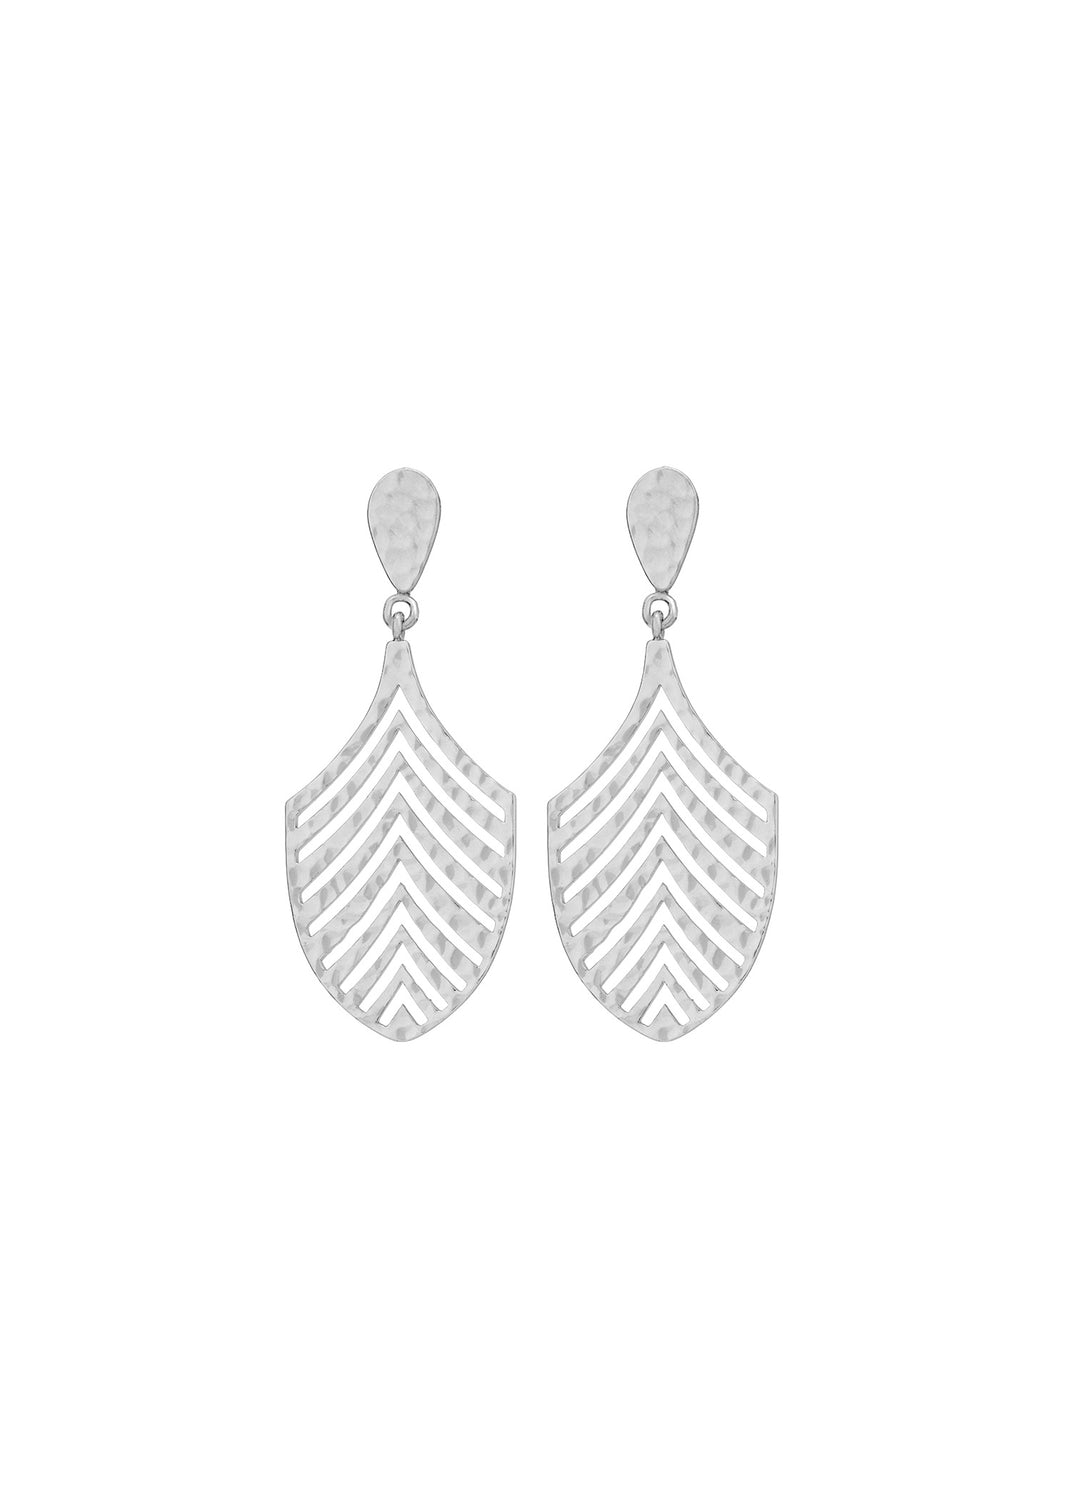 Nicole Fendel Arlo Drop Earrings